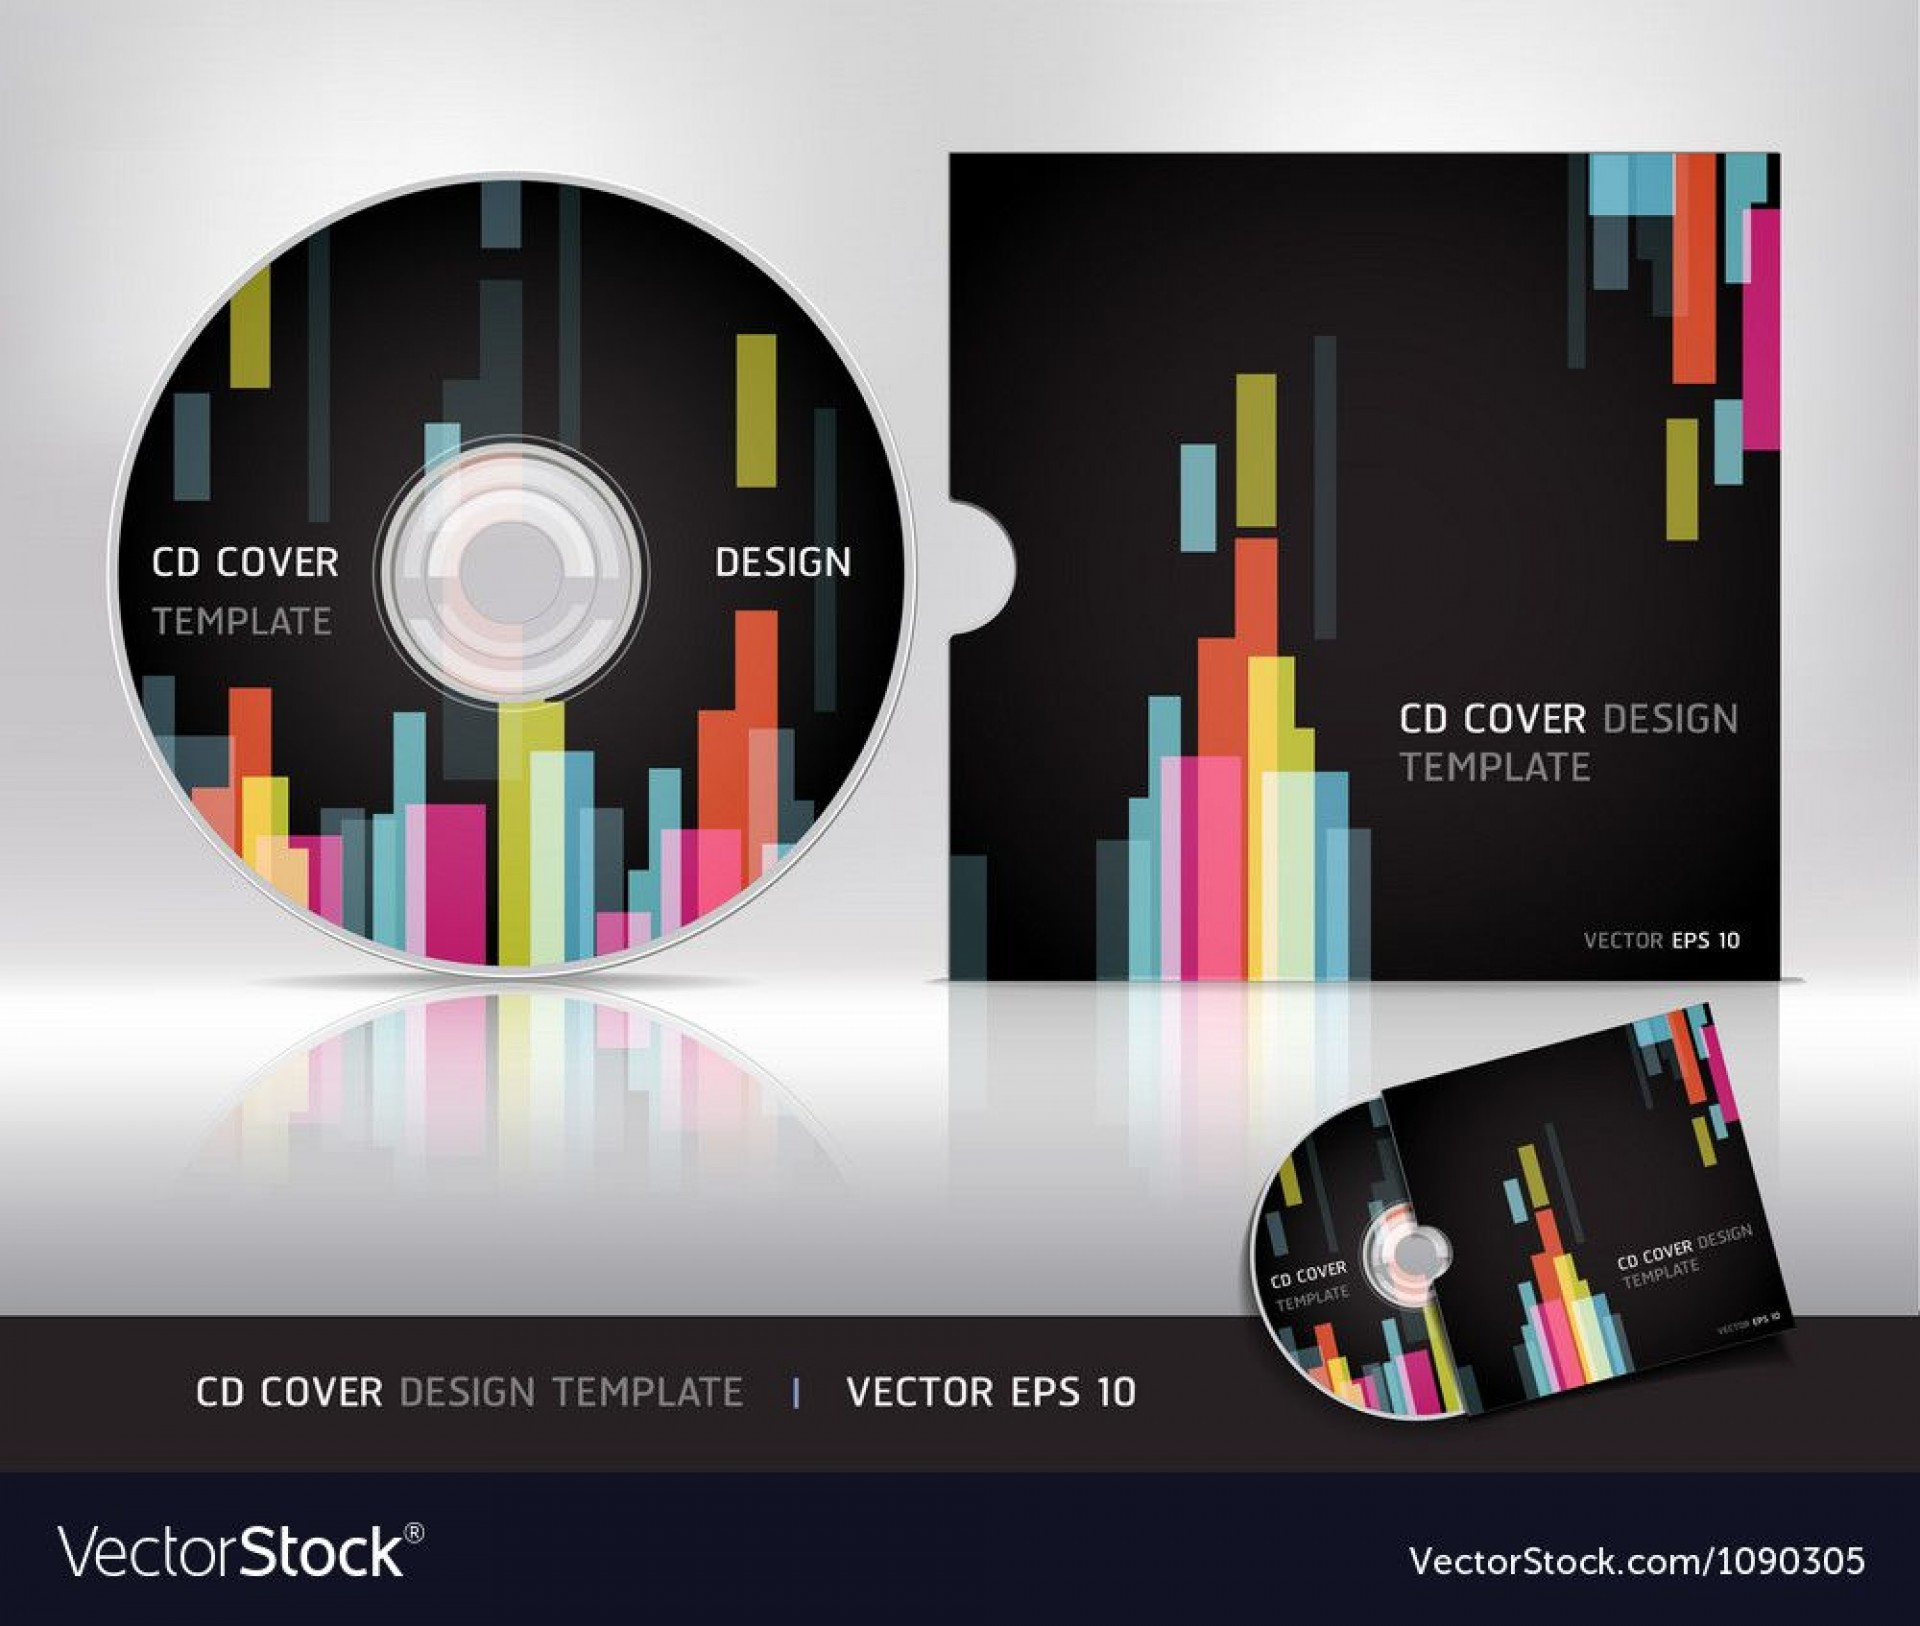 006 Archaicawful Vector Cd Cover Design Template Free Sample 1920